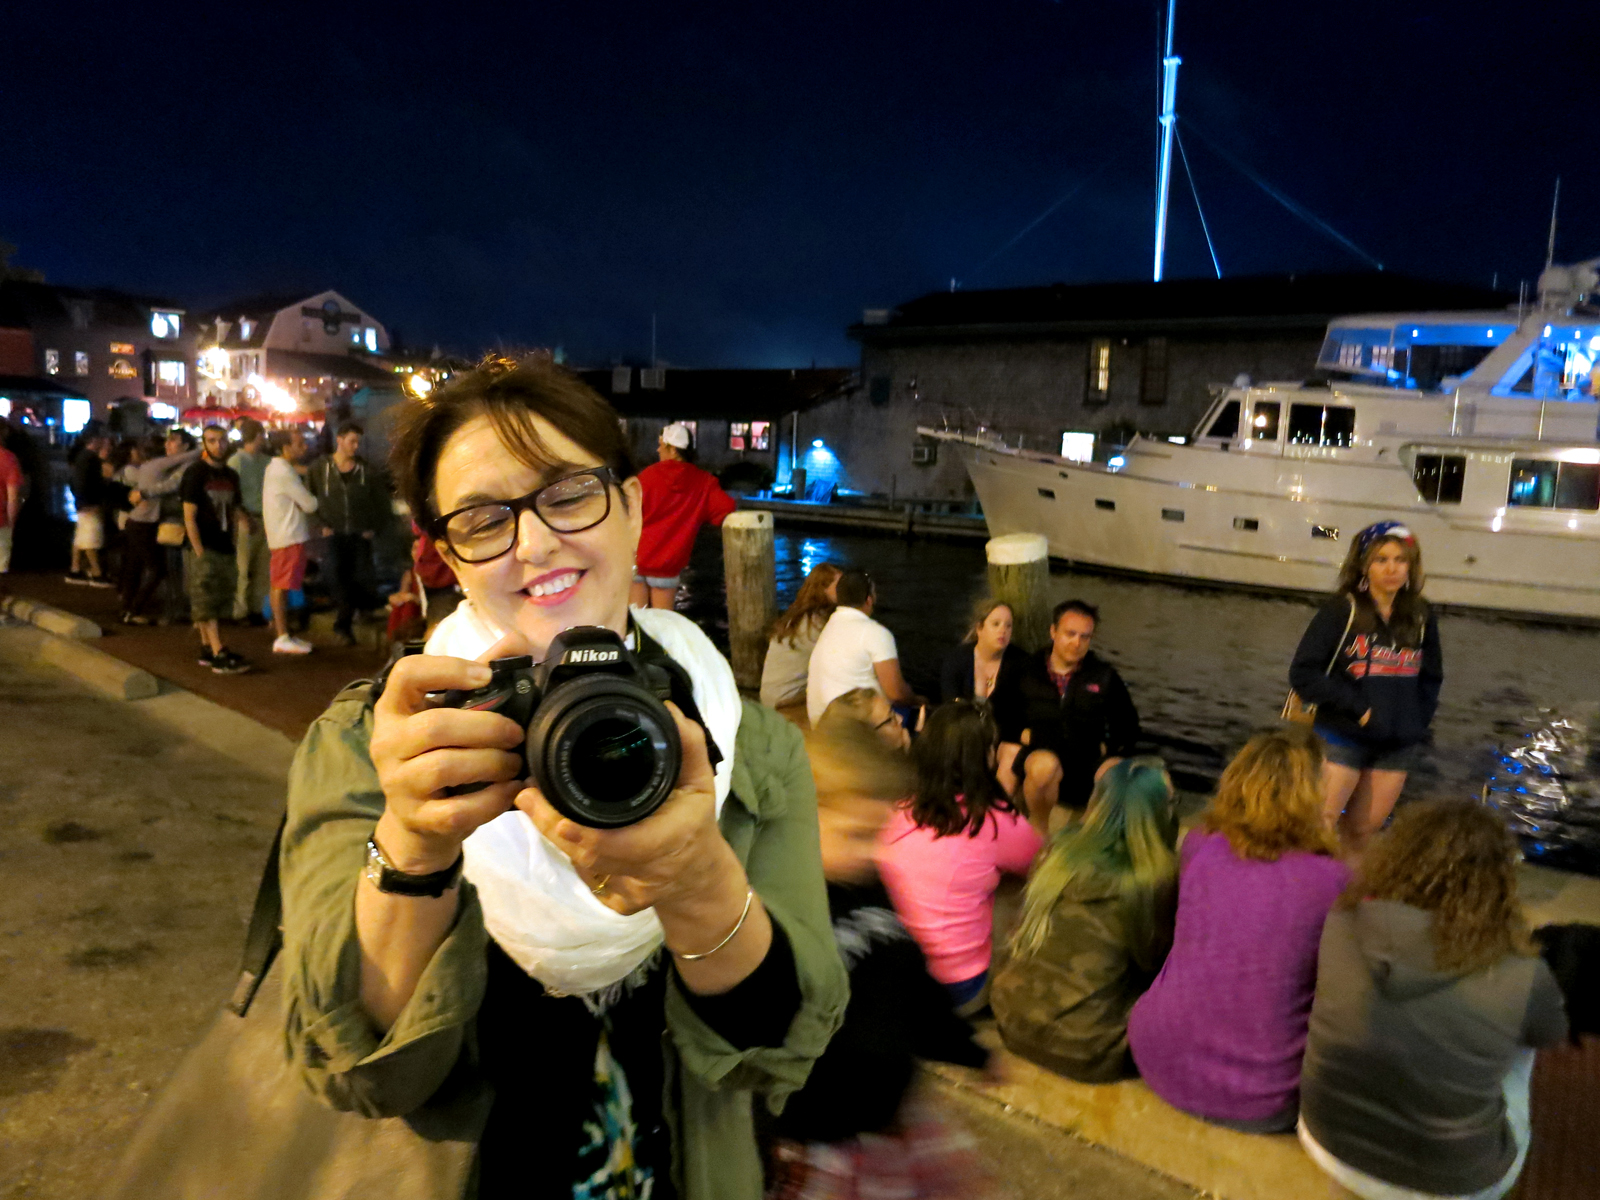 ROCKET'S RED GLARE OVER NEWPORT HARBOR - live. travel. adventure. bless. | Julia taking a picture of Bowen's Wharf in Newport, RI just before the start of the Newport Harbor fireworks display. Happy 4th of July!